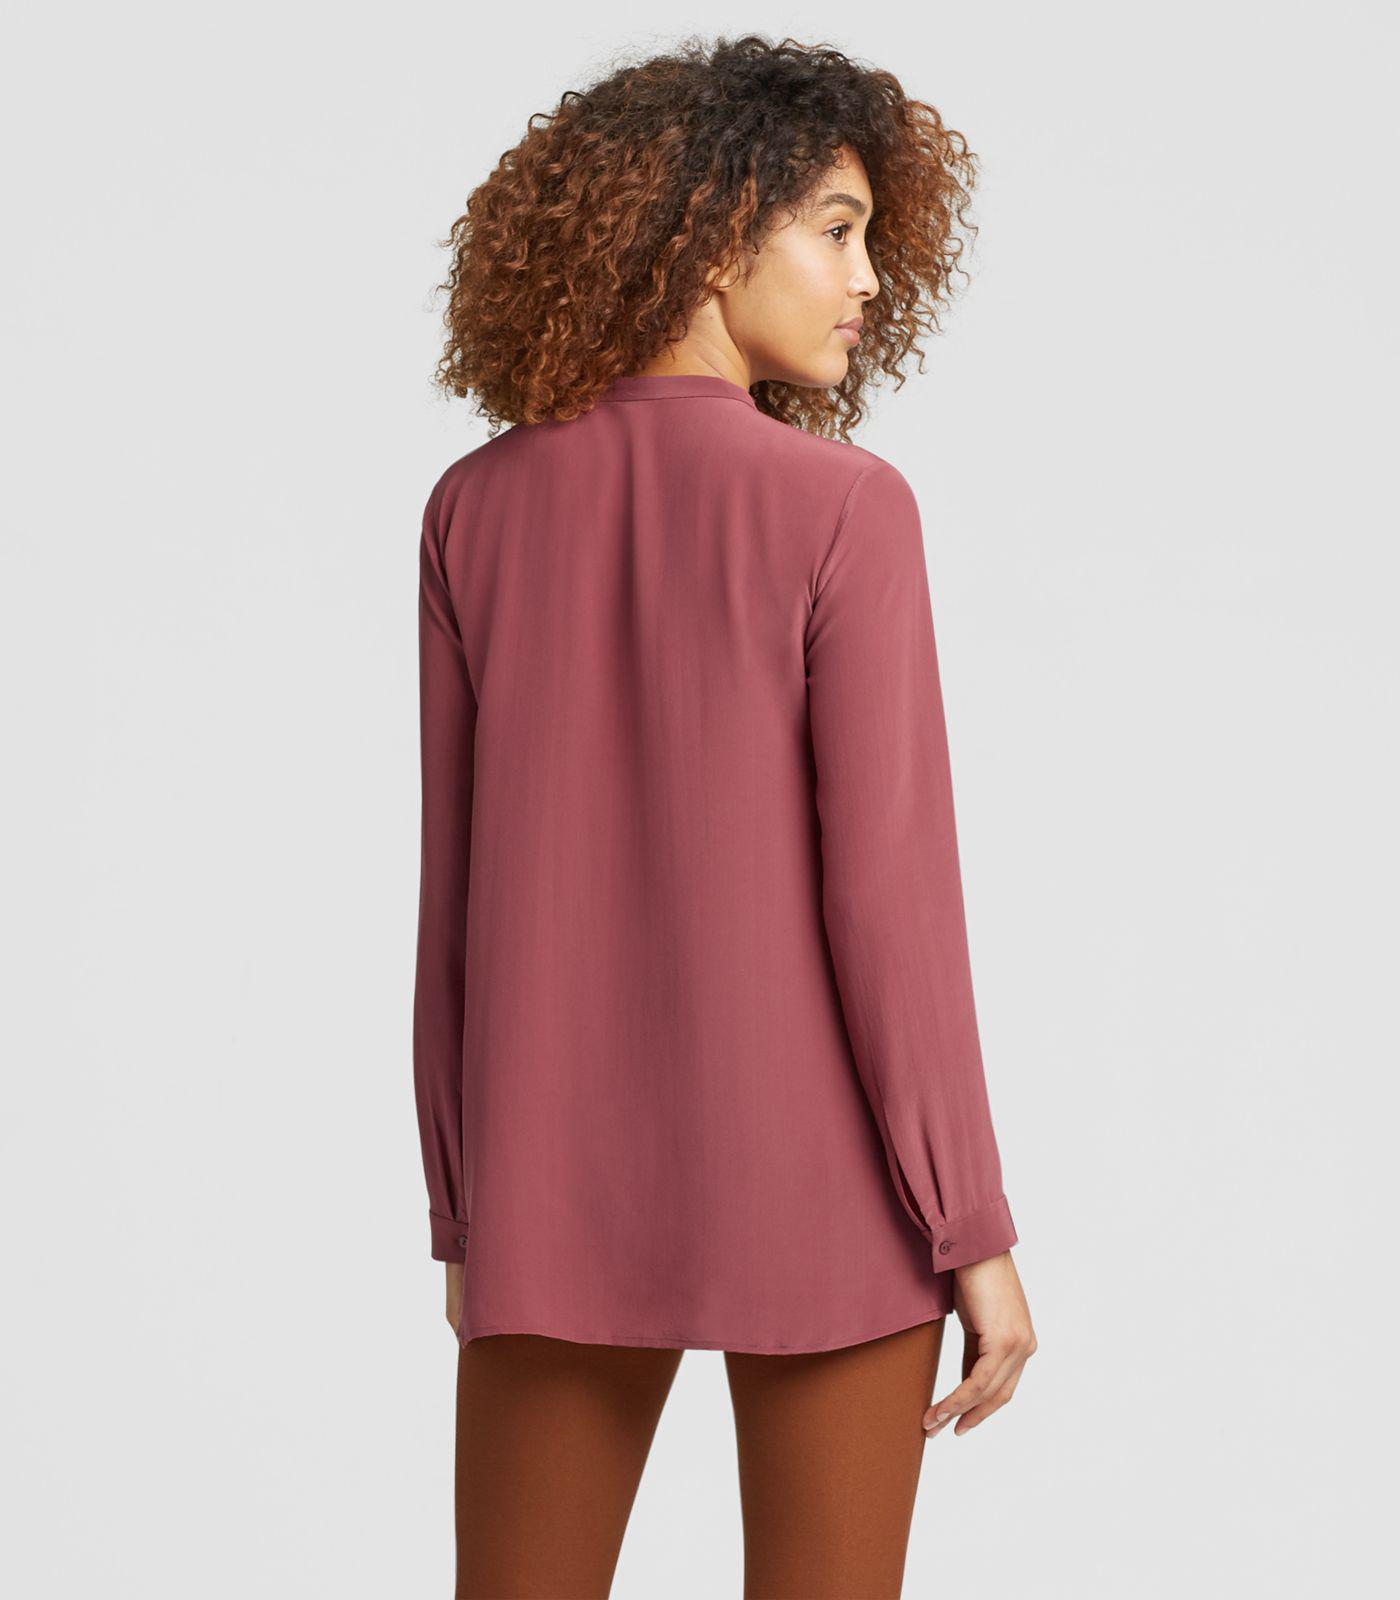 fe7f8bd3500e0 Eileen Fisher - Red Silk Crepe De Chine A-line Shirt - Lyst. View fullscreen